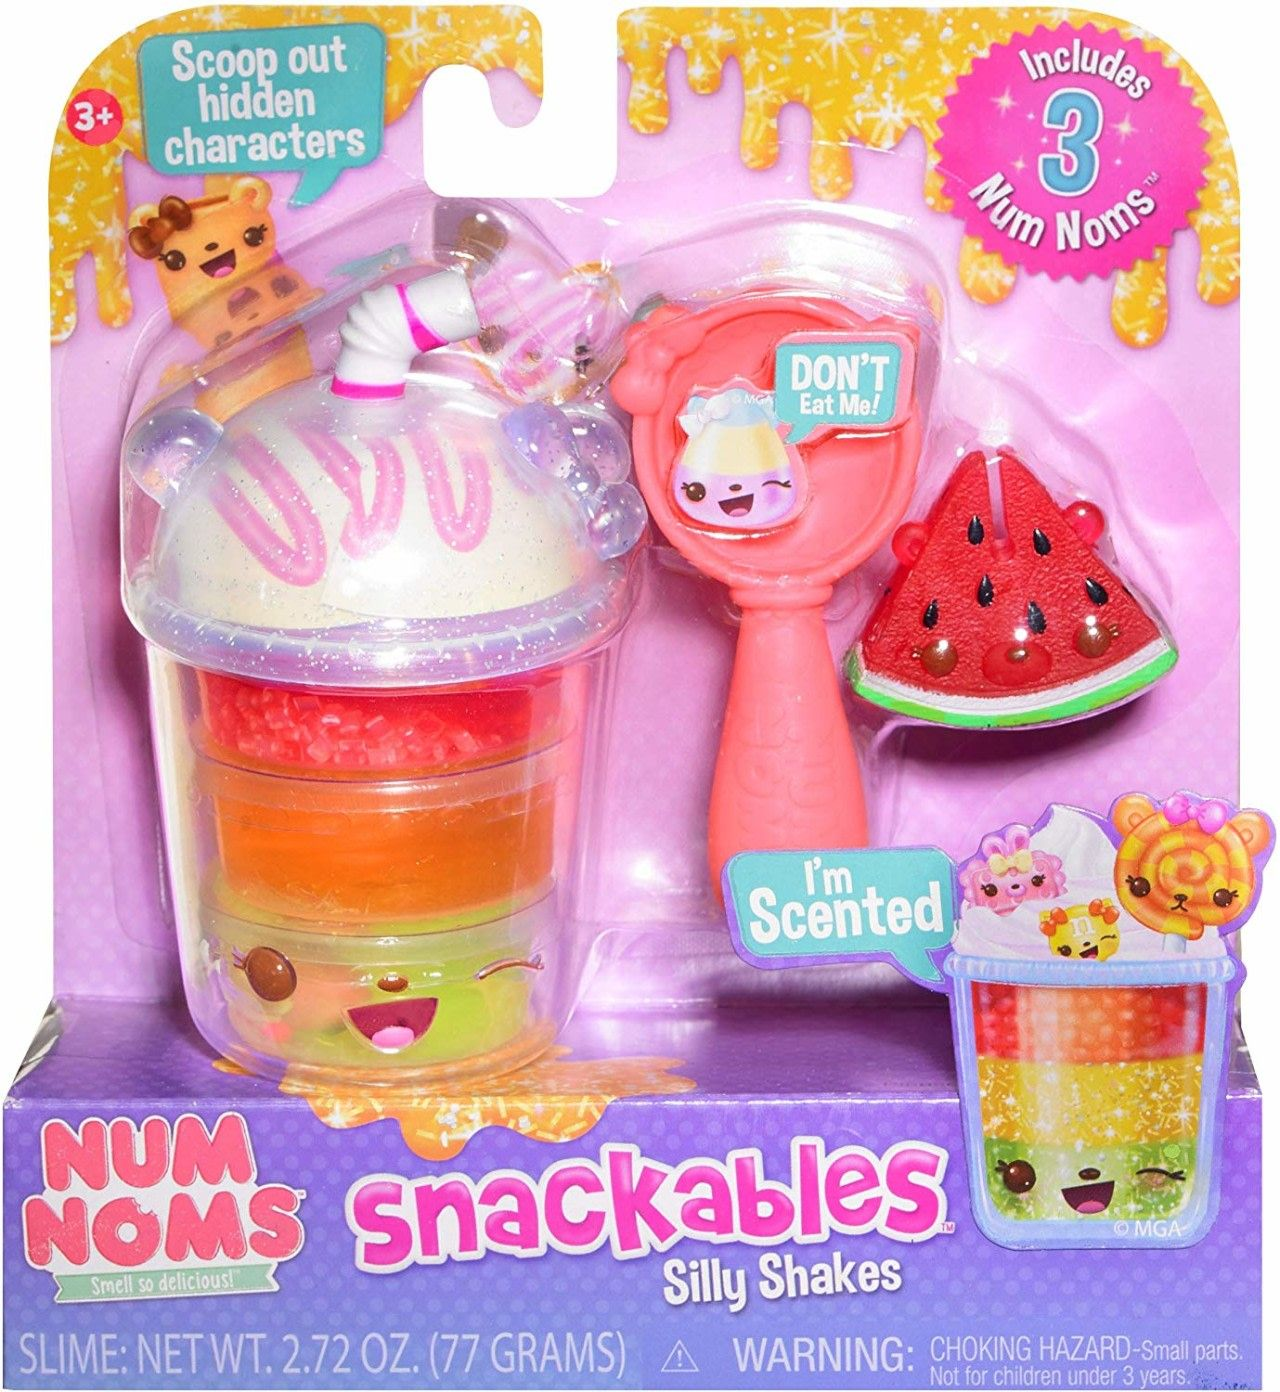 Num Noms Snackables Silly Shakes – Birthday Shake Collectible Only $4.97 (Reg. $10